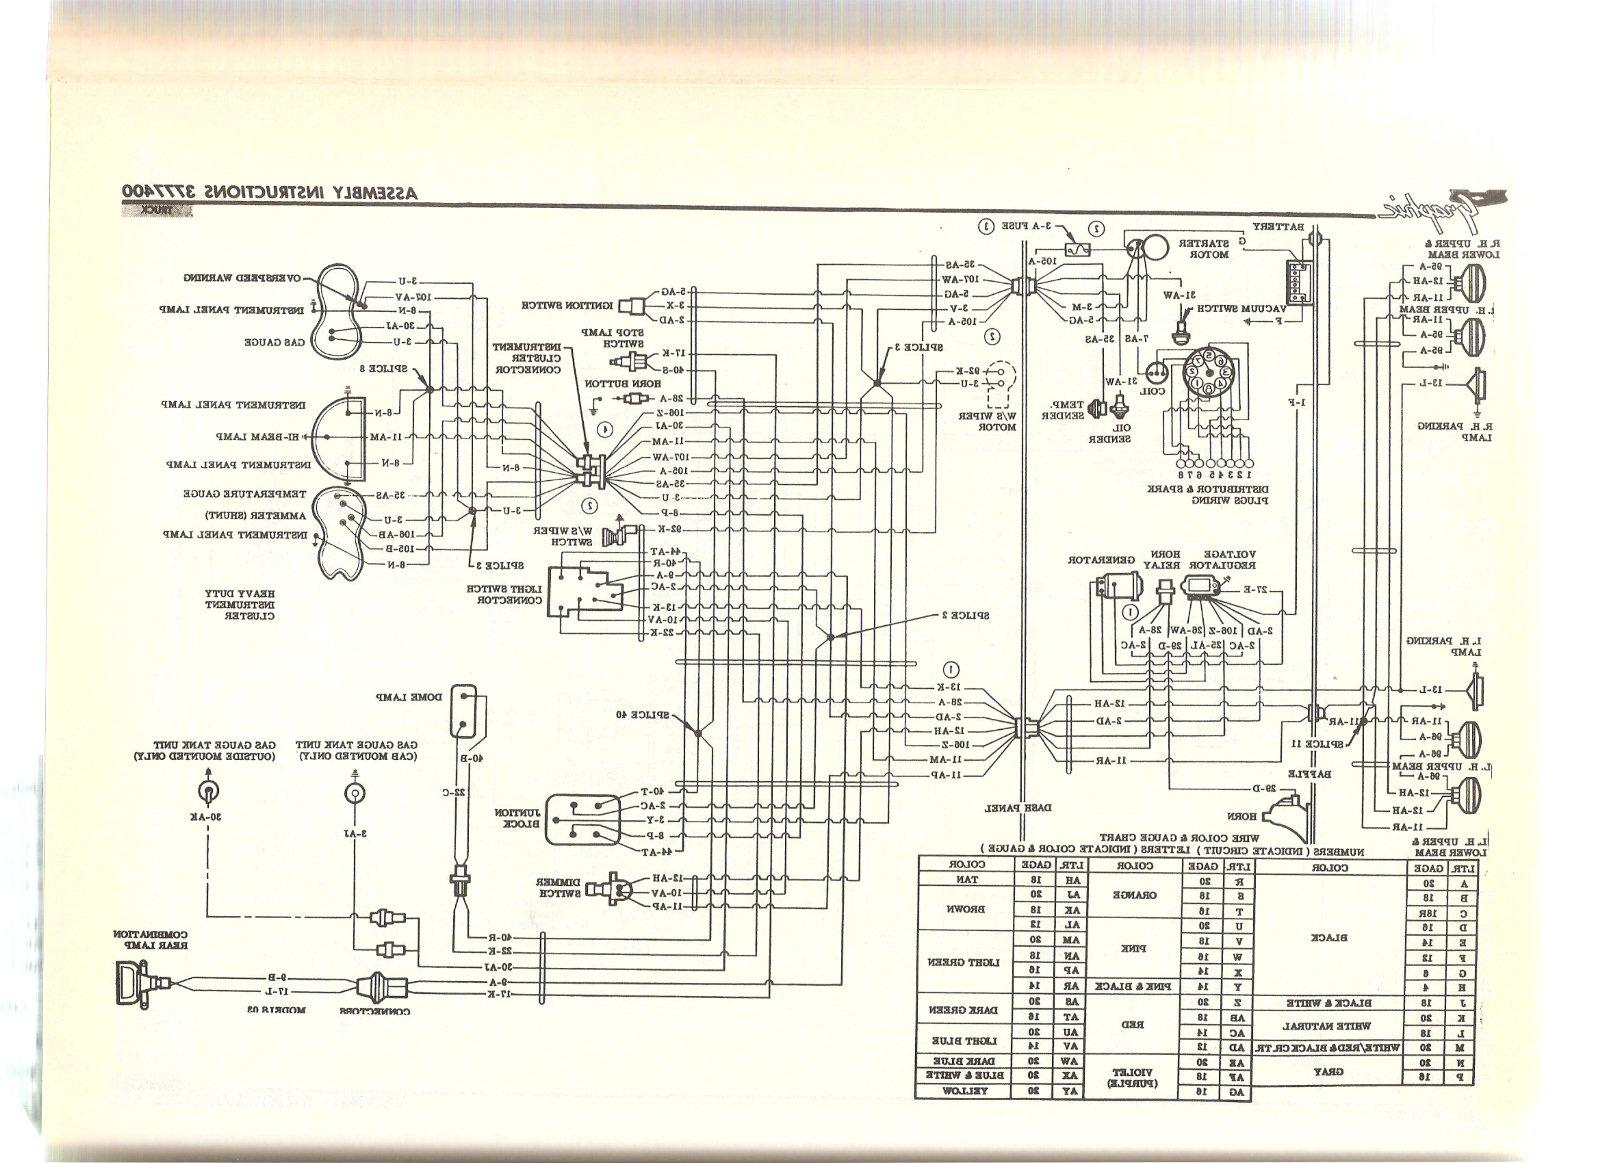 hight resolution of wiring diagram 1959 chrysler windsor wiring diagrams konsult 1959 chrysler wiring diagram